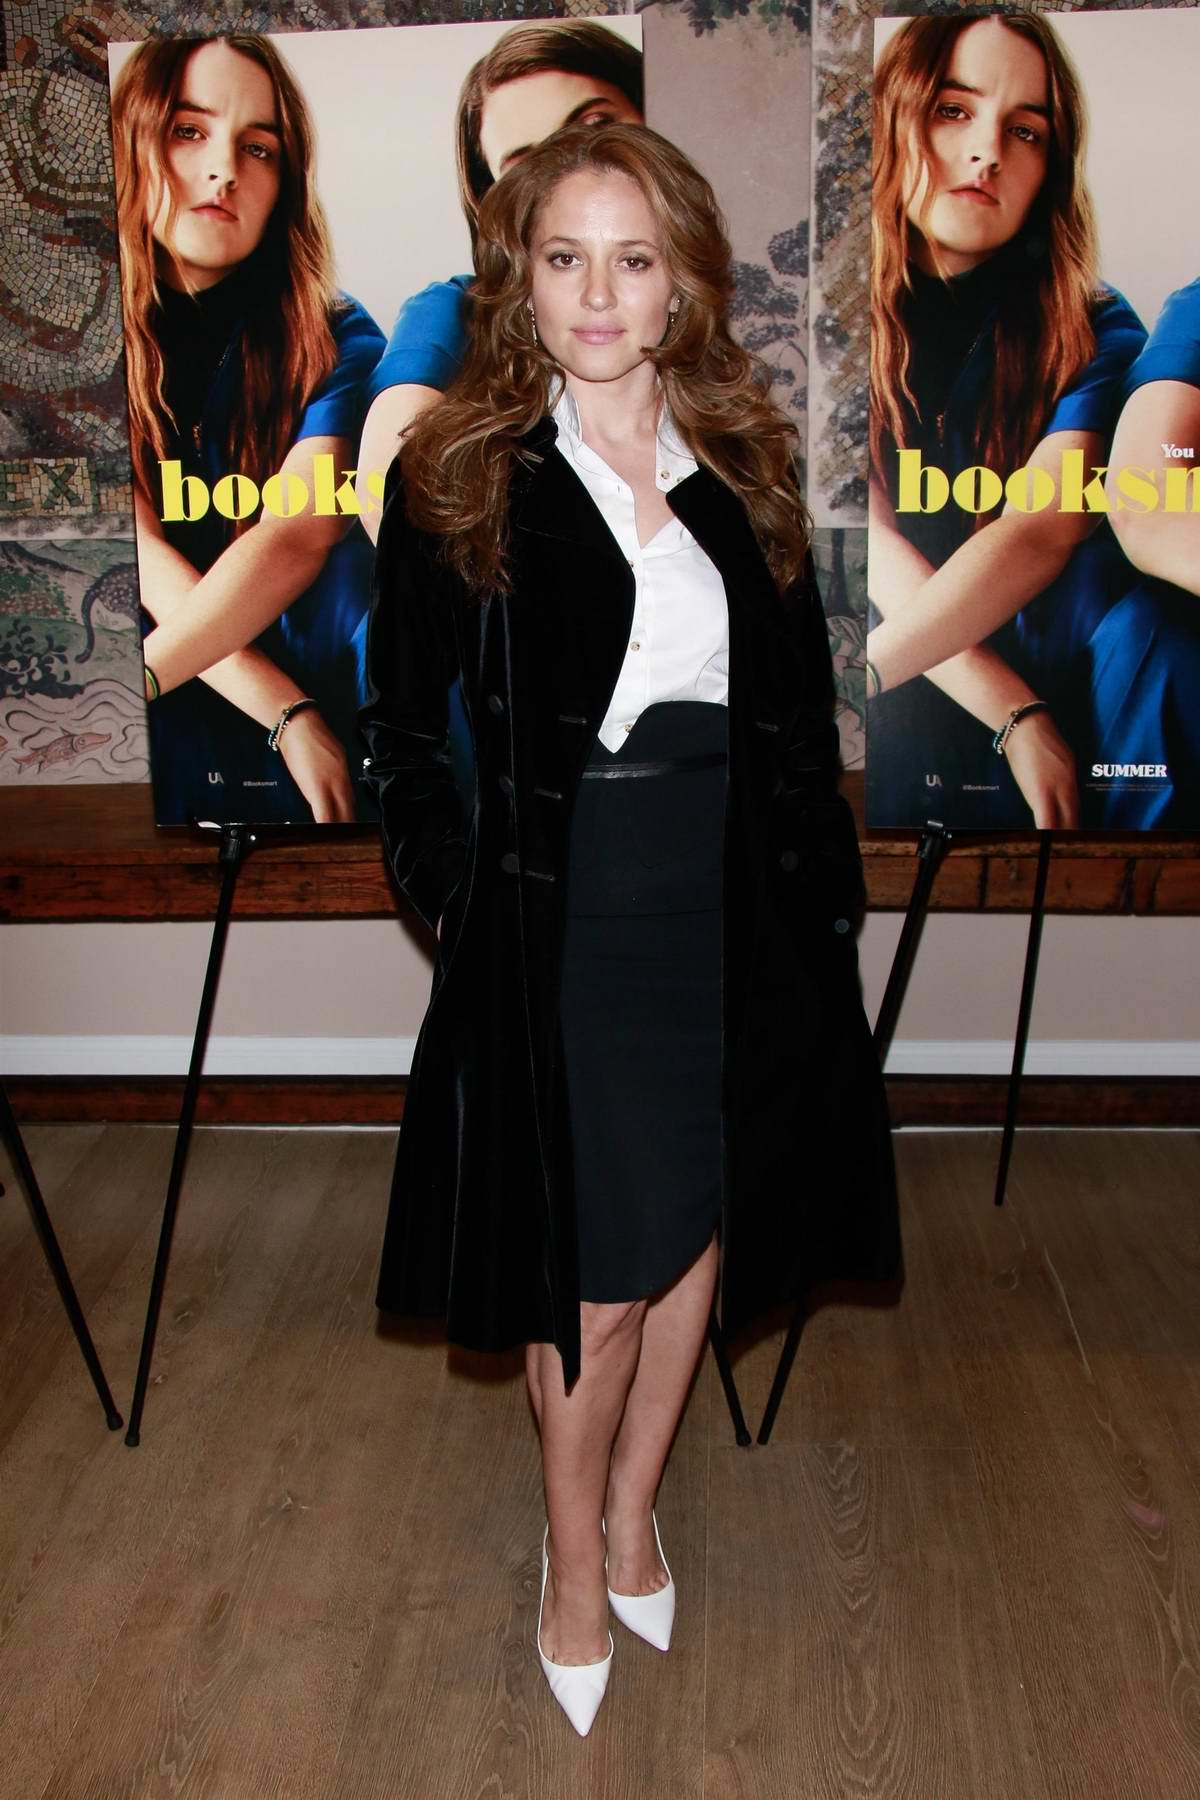 Margarita Levieva attends the special screening of 'Booksmart' in New York City